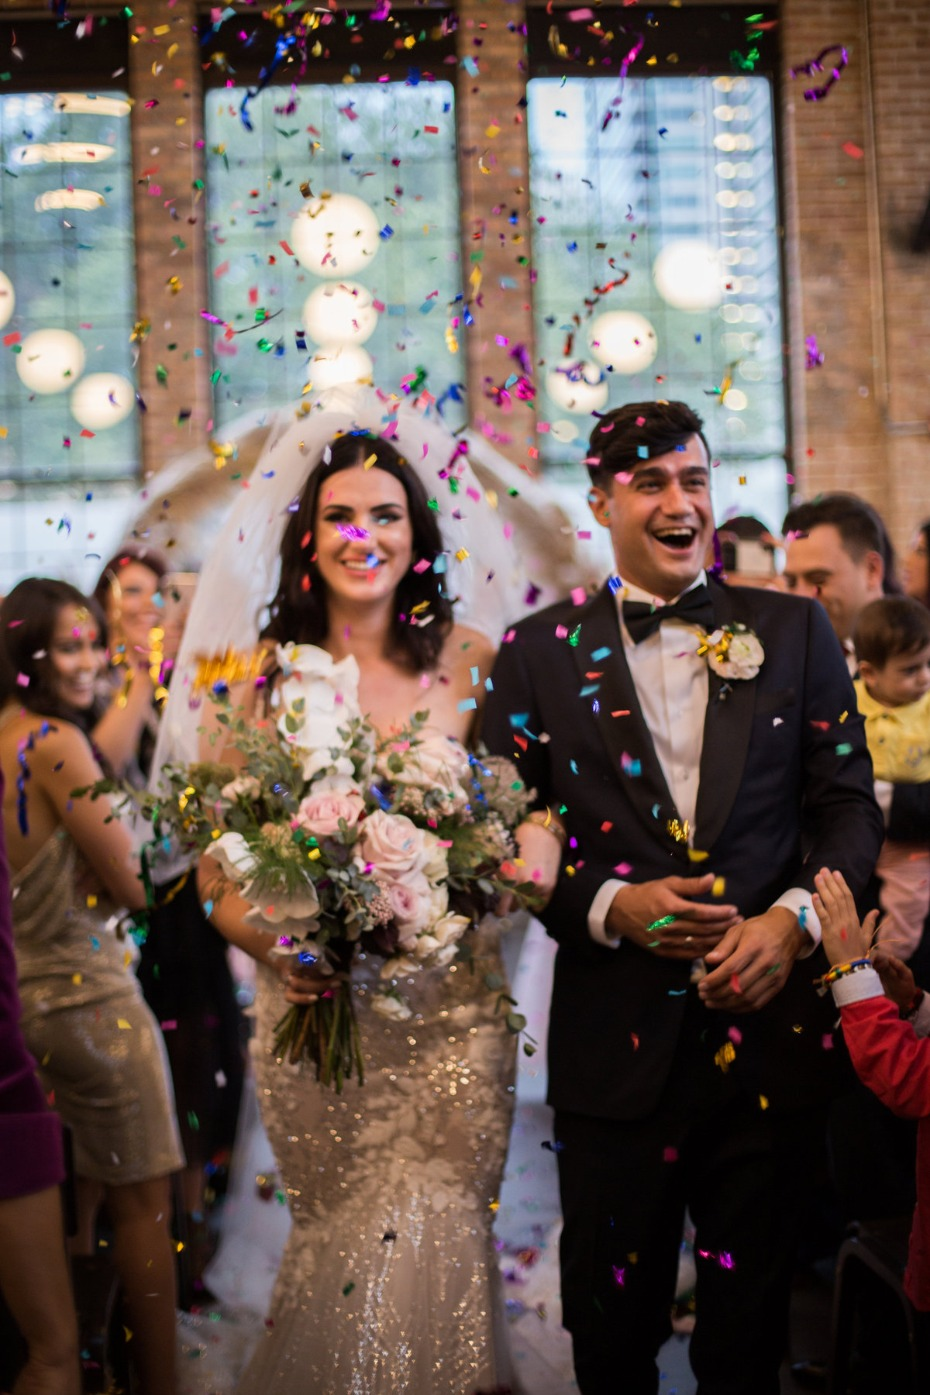 How to Keep Your Wedding Hopes High When This Year Has Made That Lowkey Impossible